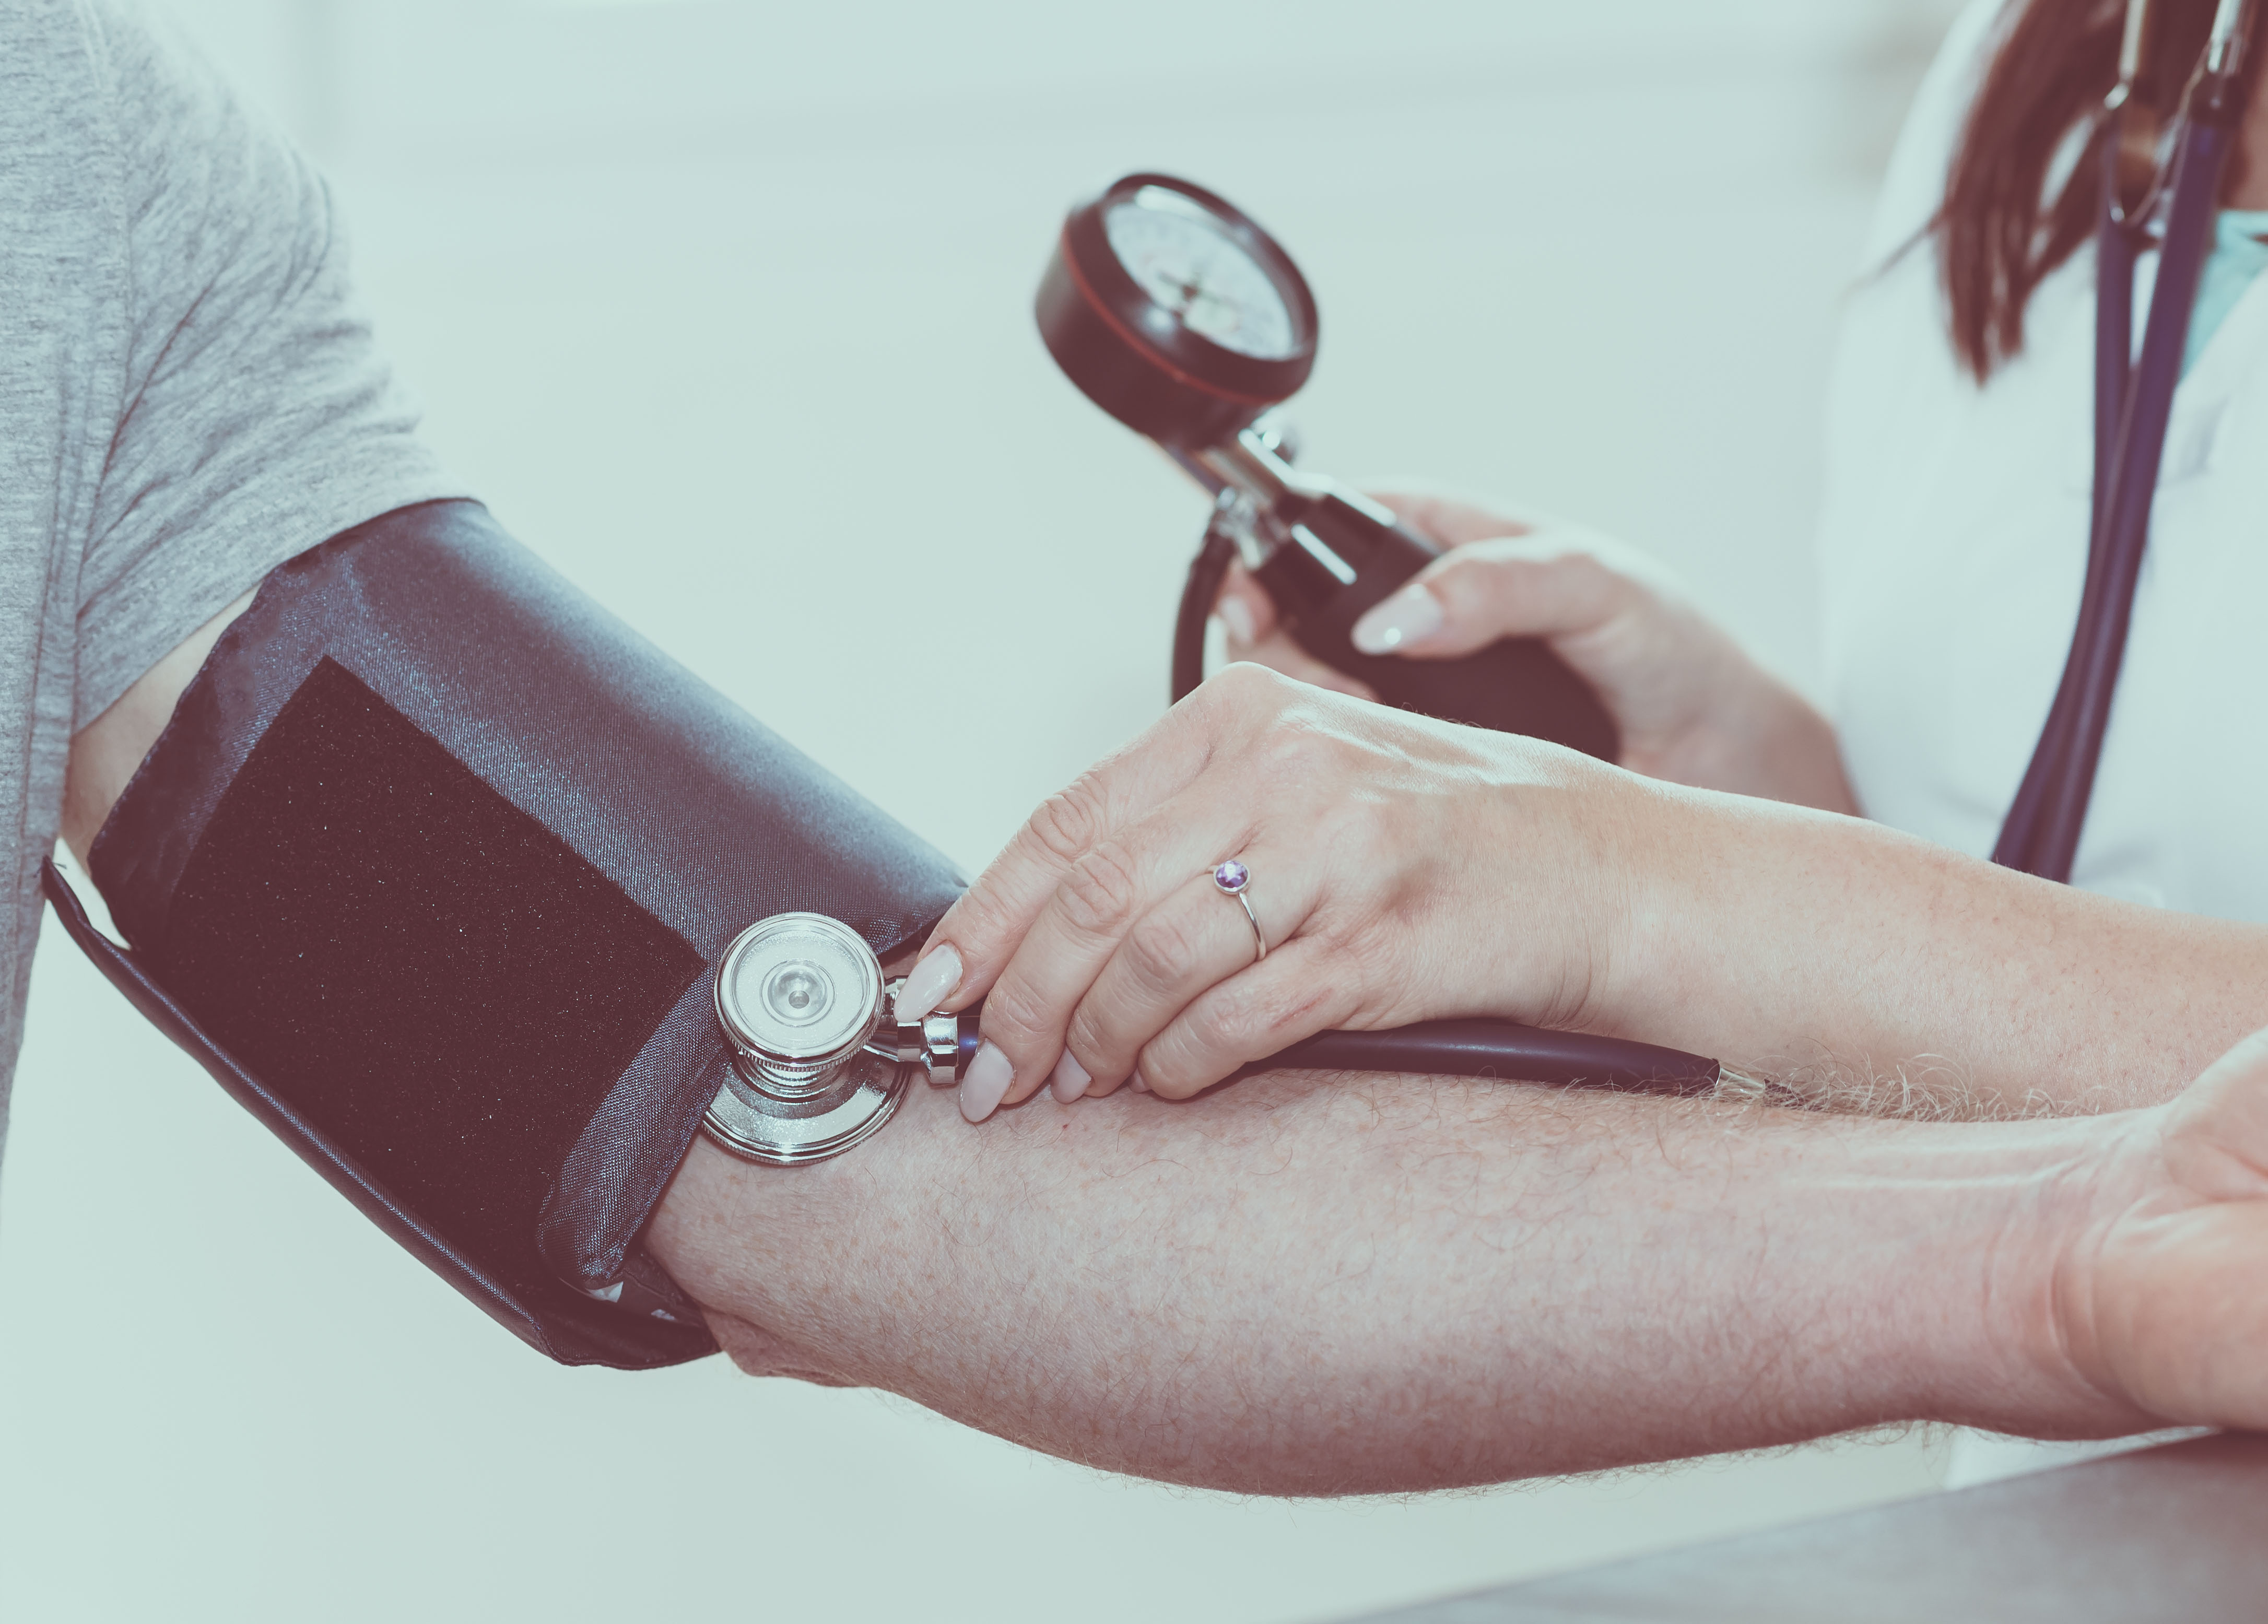 taking a person's blood pressure